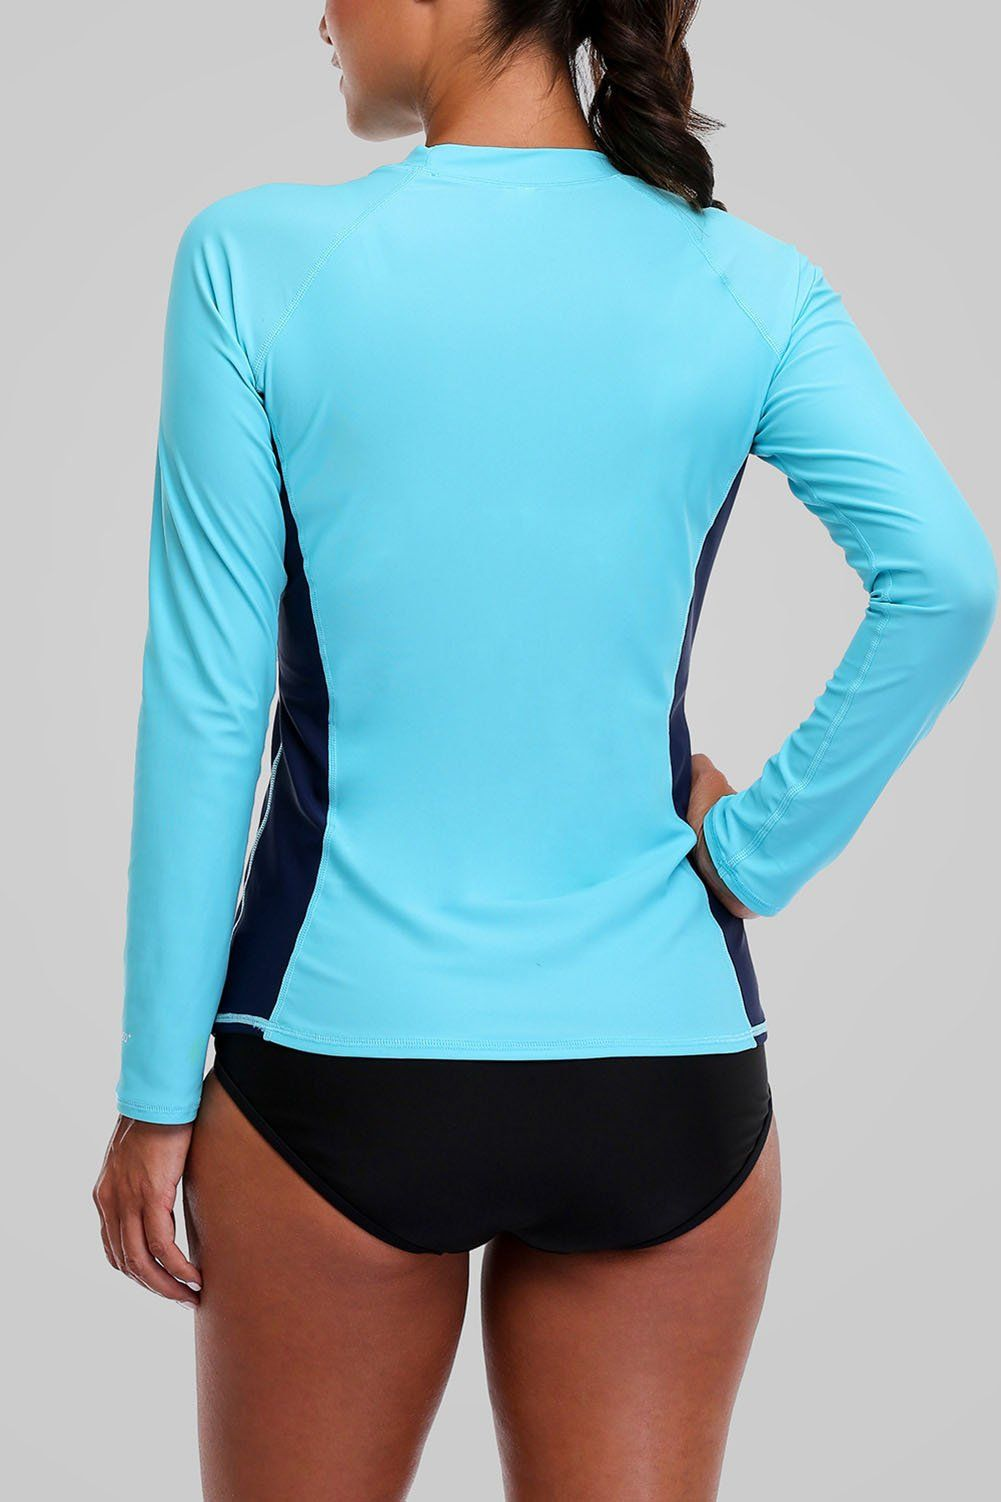 4b022fcde Women'S Diving Rash Guard Shirts - WNDSYN Women Rash Guard Swimwear Long  Sleeve Rashguard Swim Shirts Surf Rashguard Top Swimsuit UPF 50 Aqua XL *  You could ...